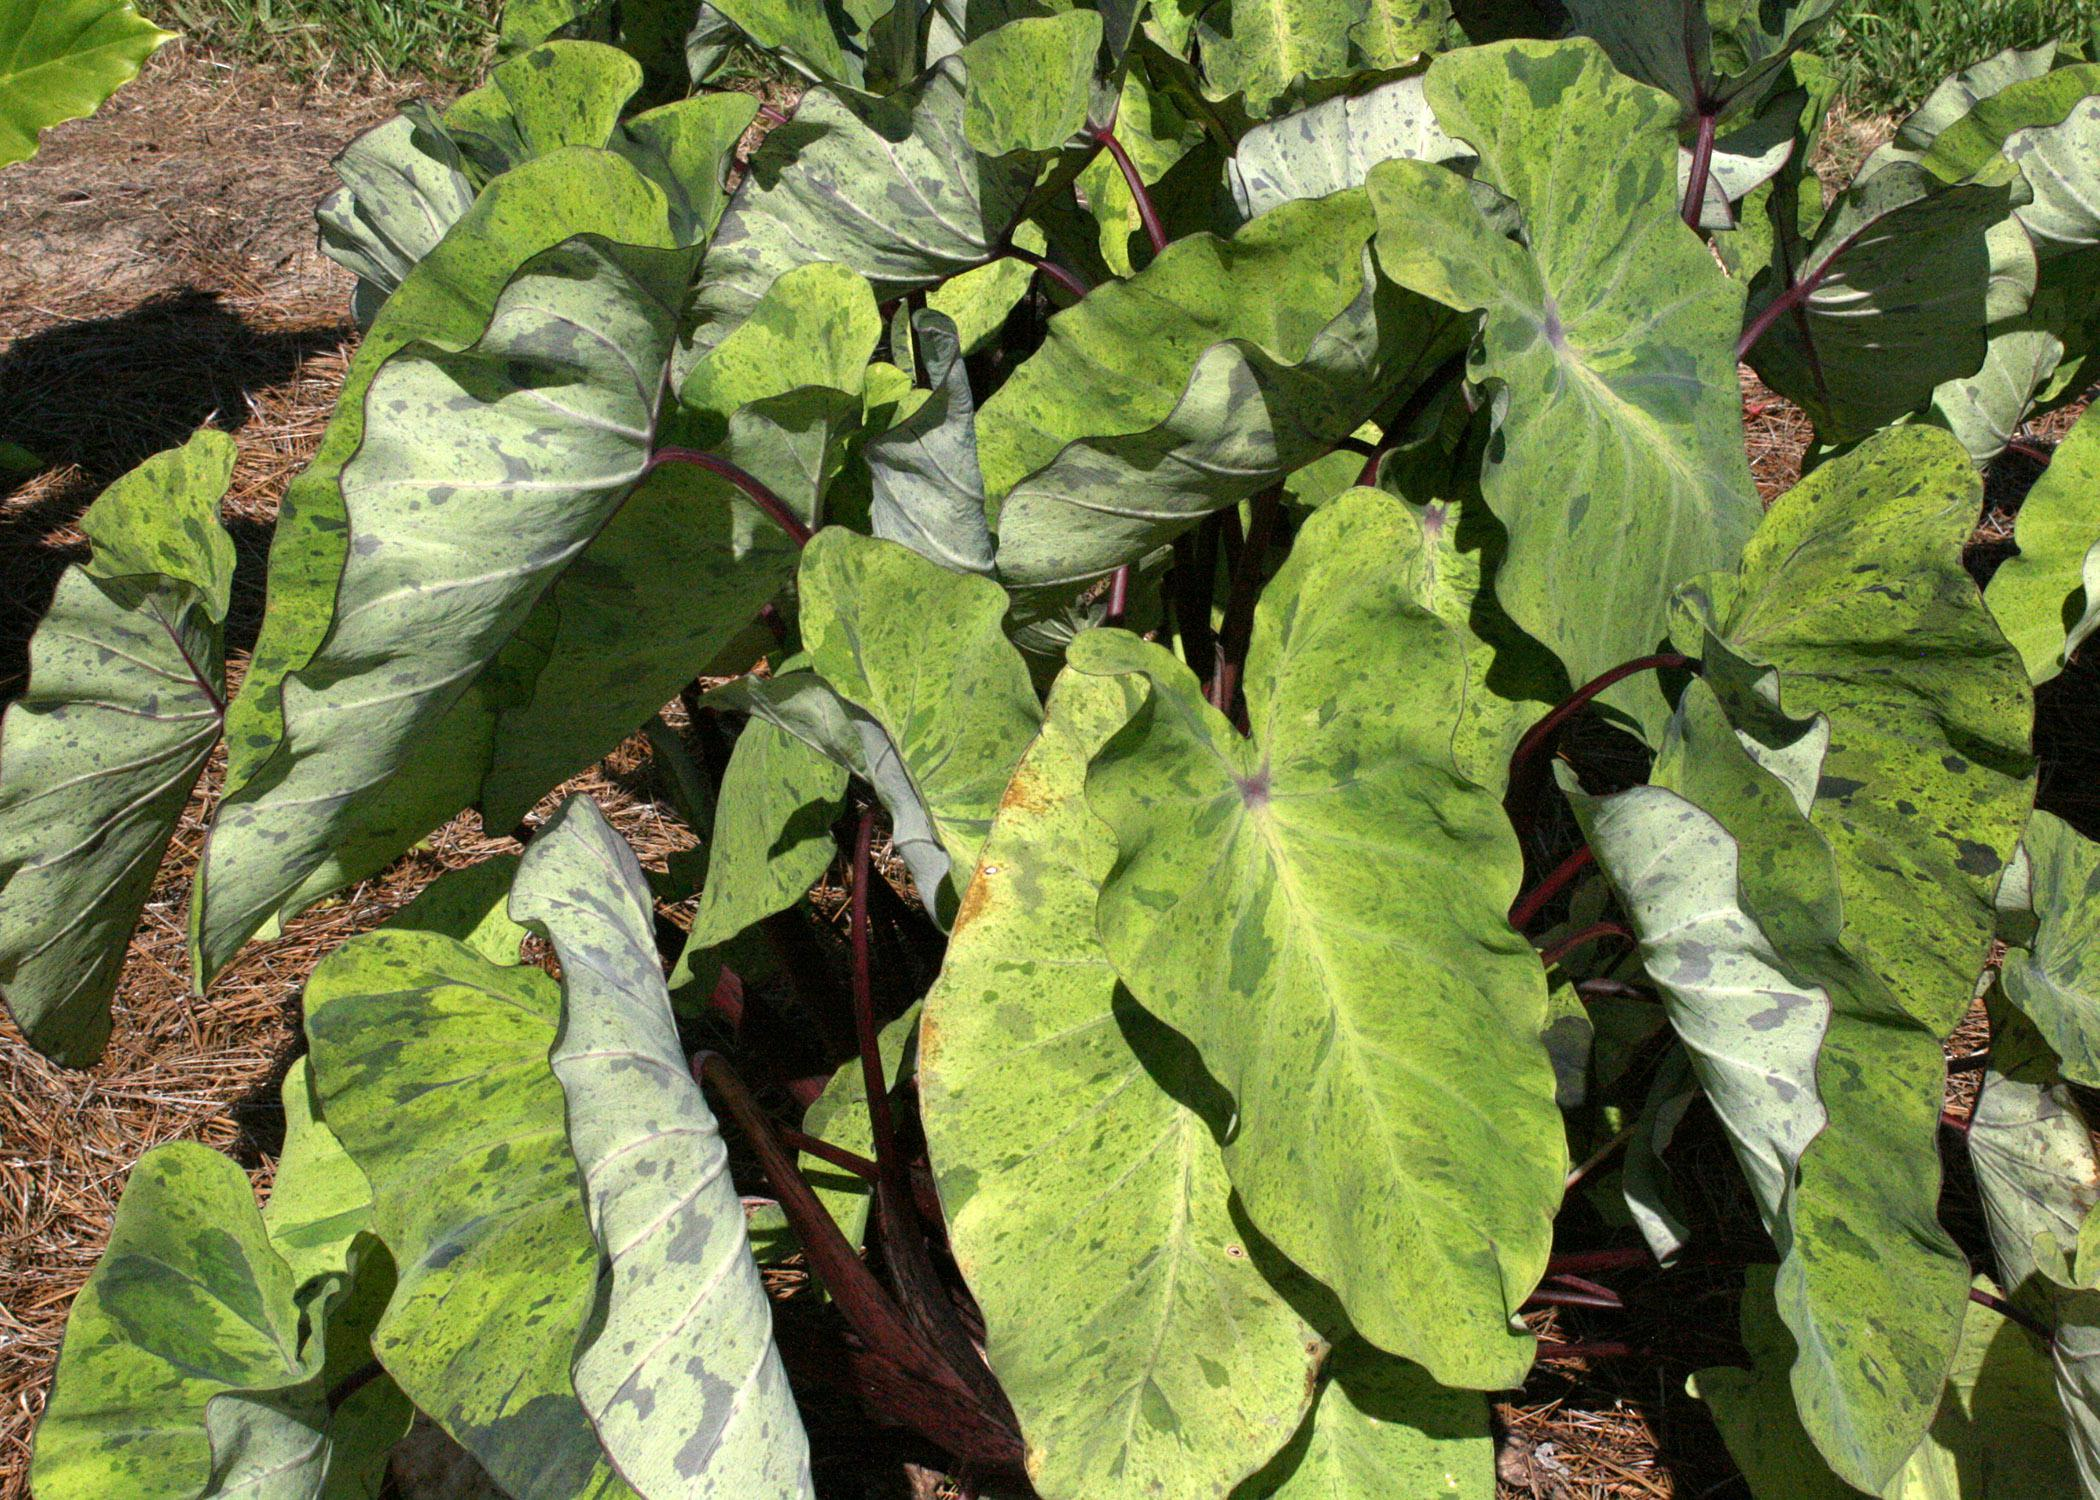 Colocasia Mojito adds a refreshing color splash to the garden with its medium-green leaves speckled with dark flecks of purple. (Photo by MSU Extension Service/Gary Bachman)